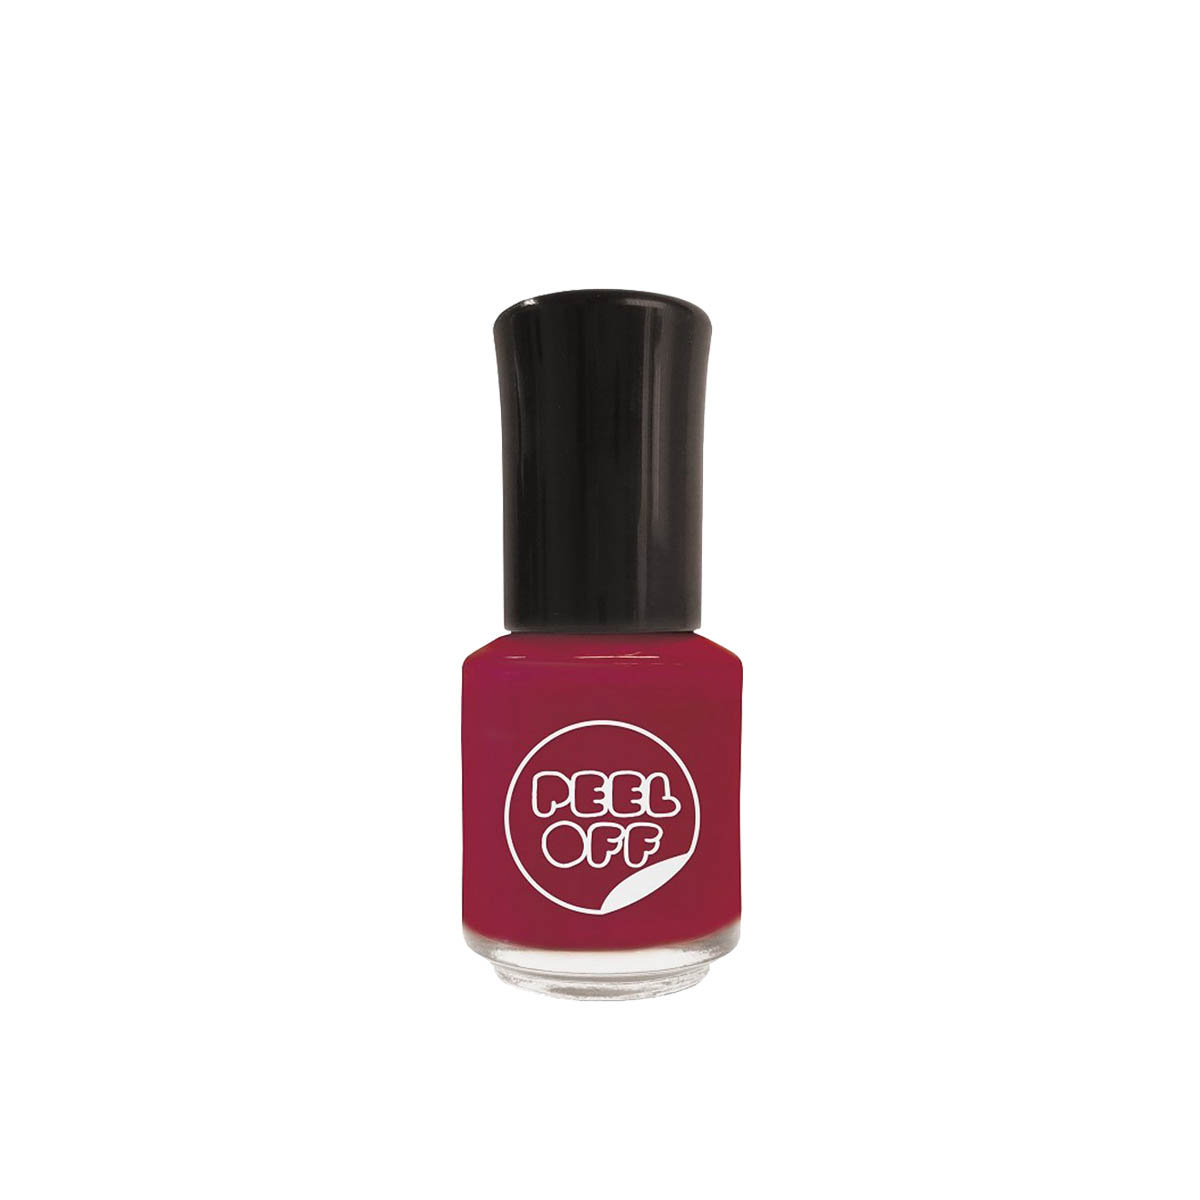 BW Peel Off Manicure (Lady Bordeaux)